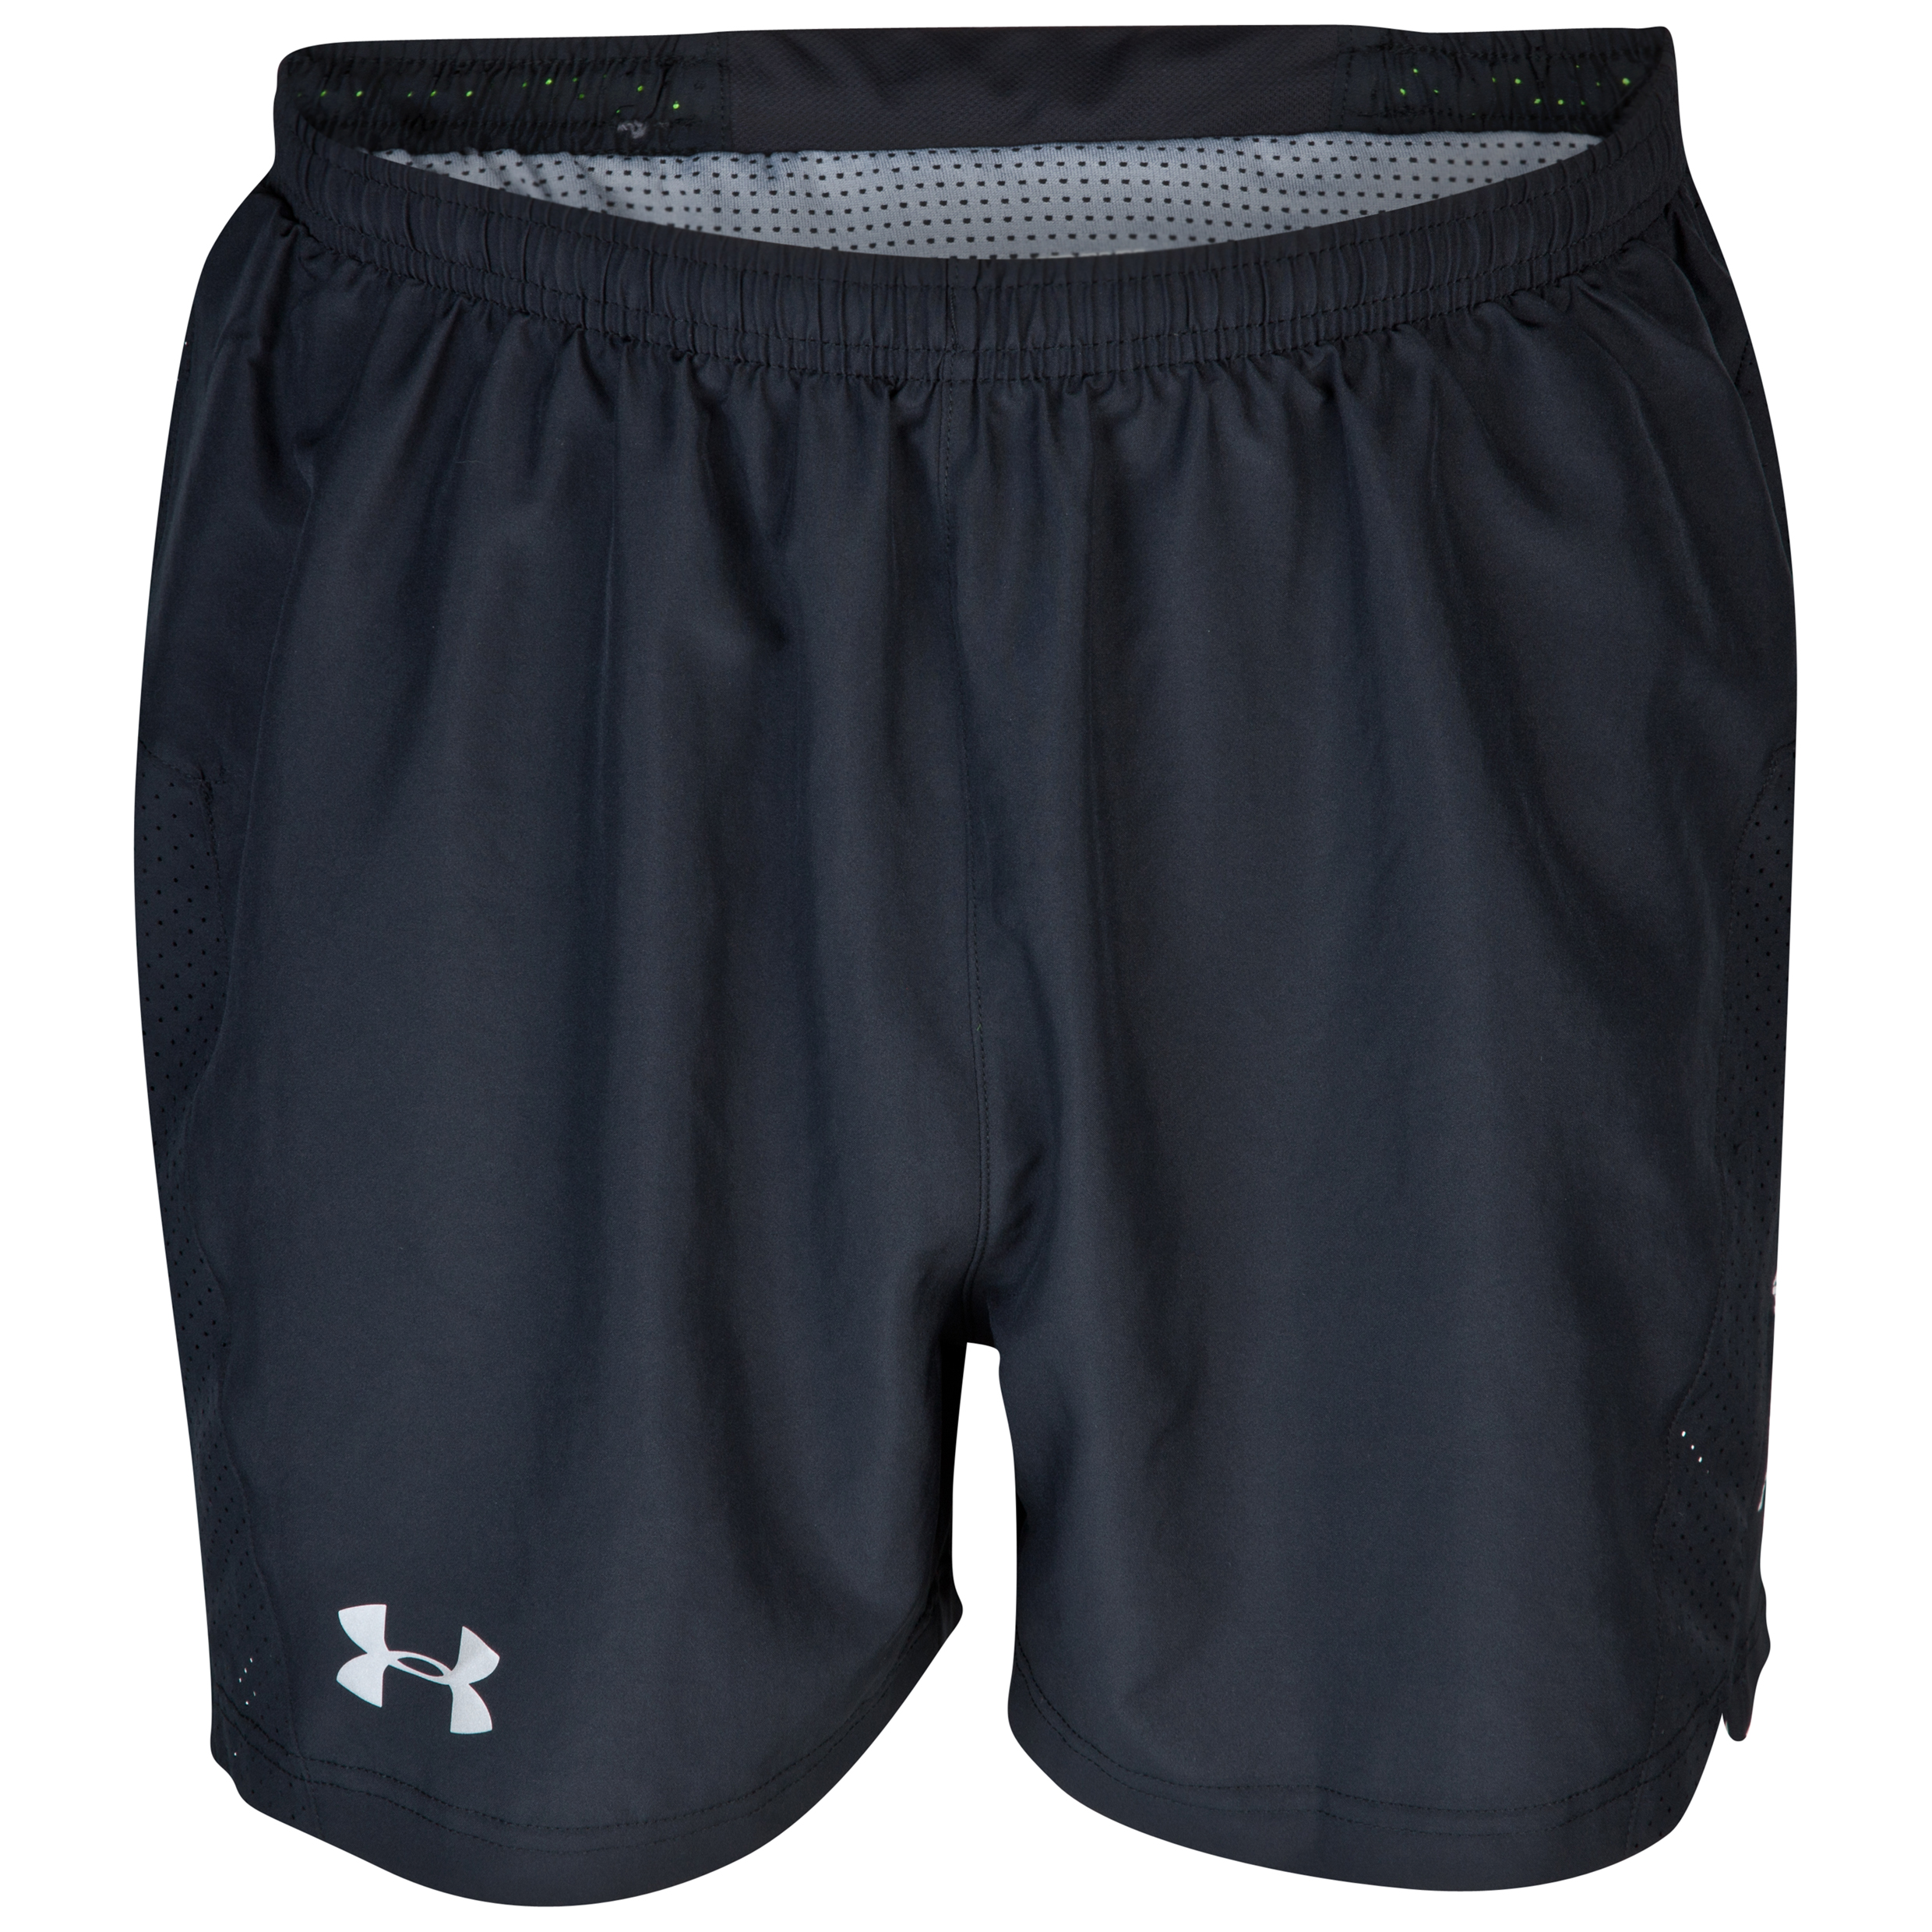 Under Armour HG Flyweight 5 Inch Run Shorts - Black